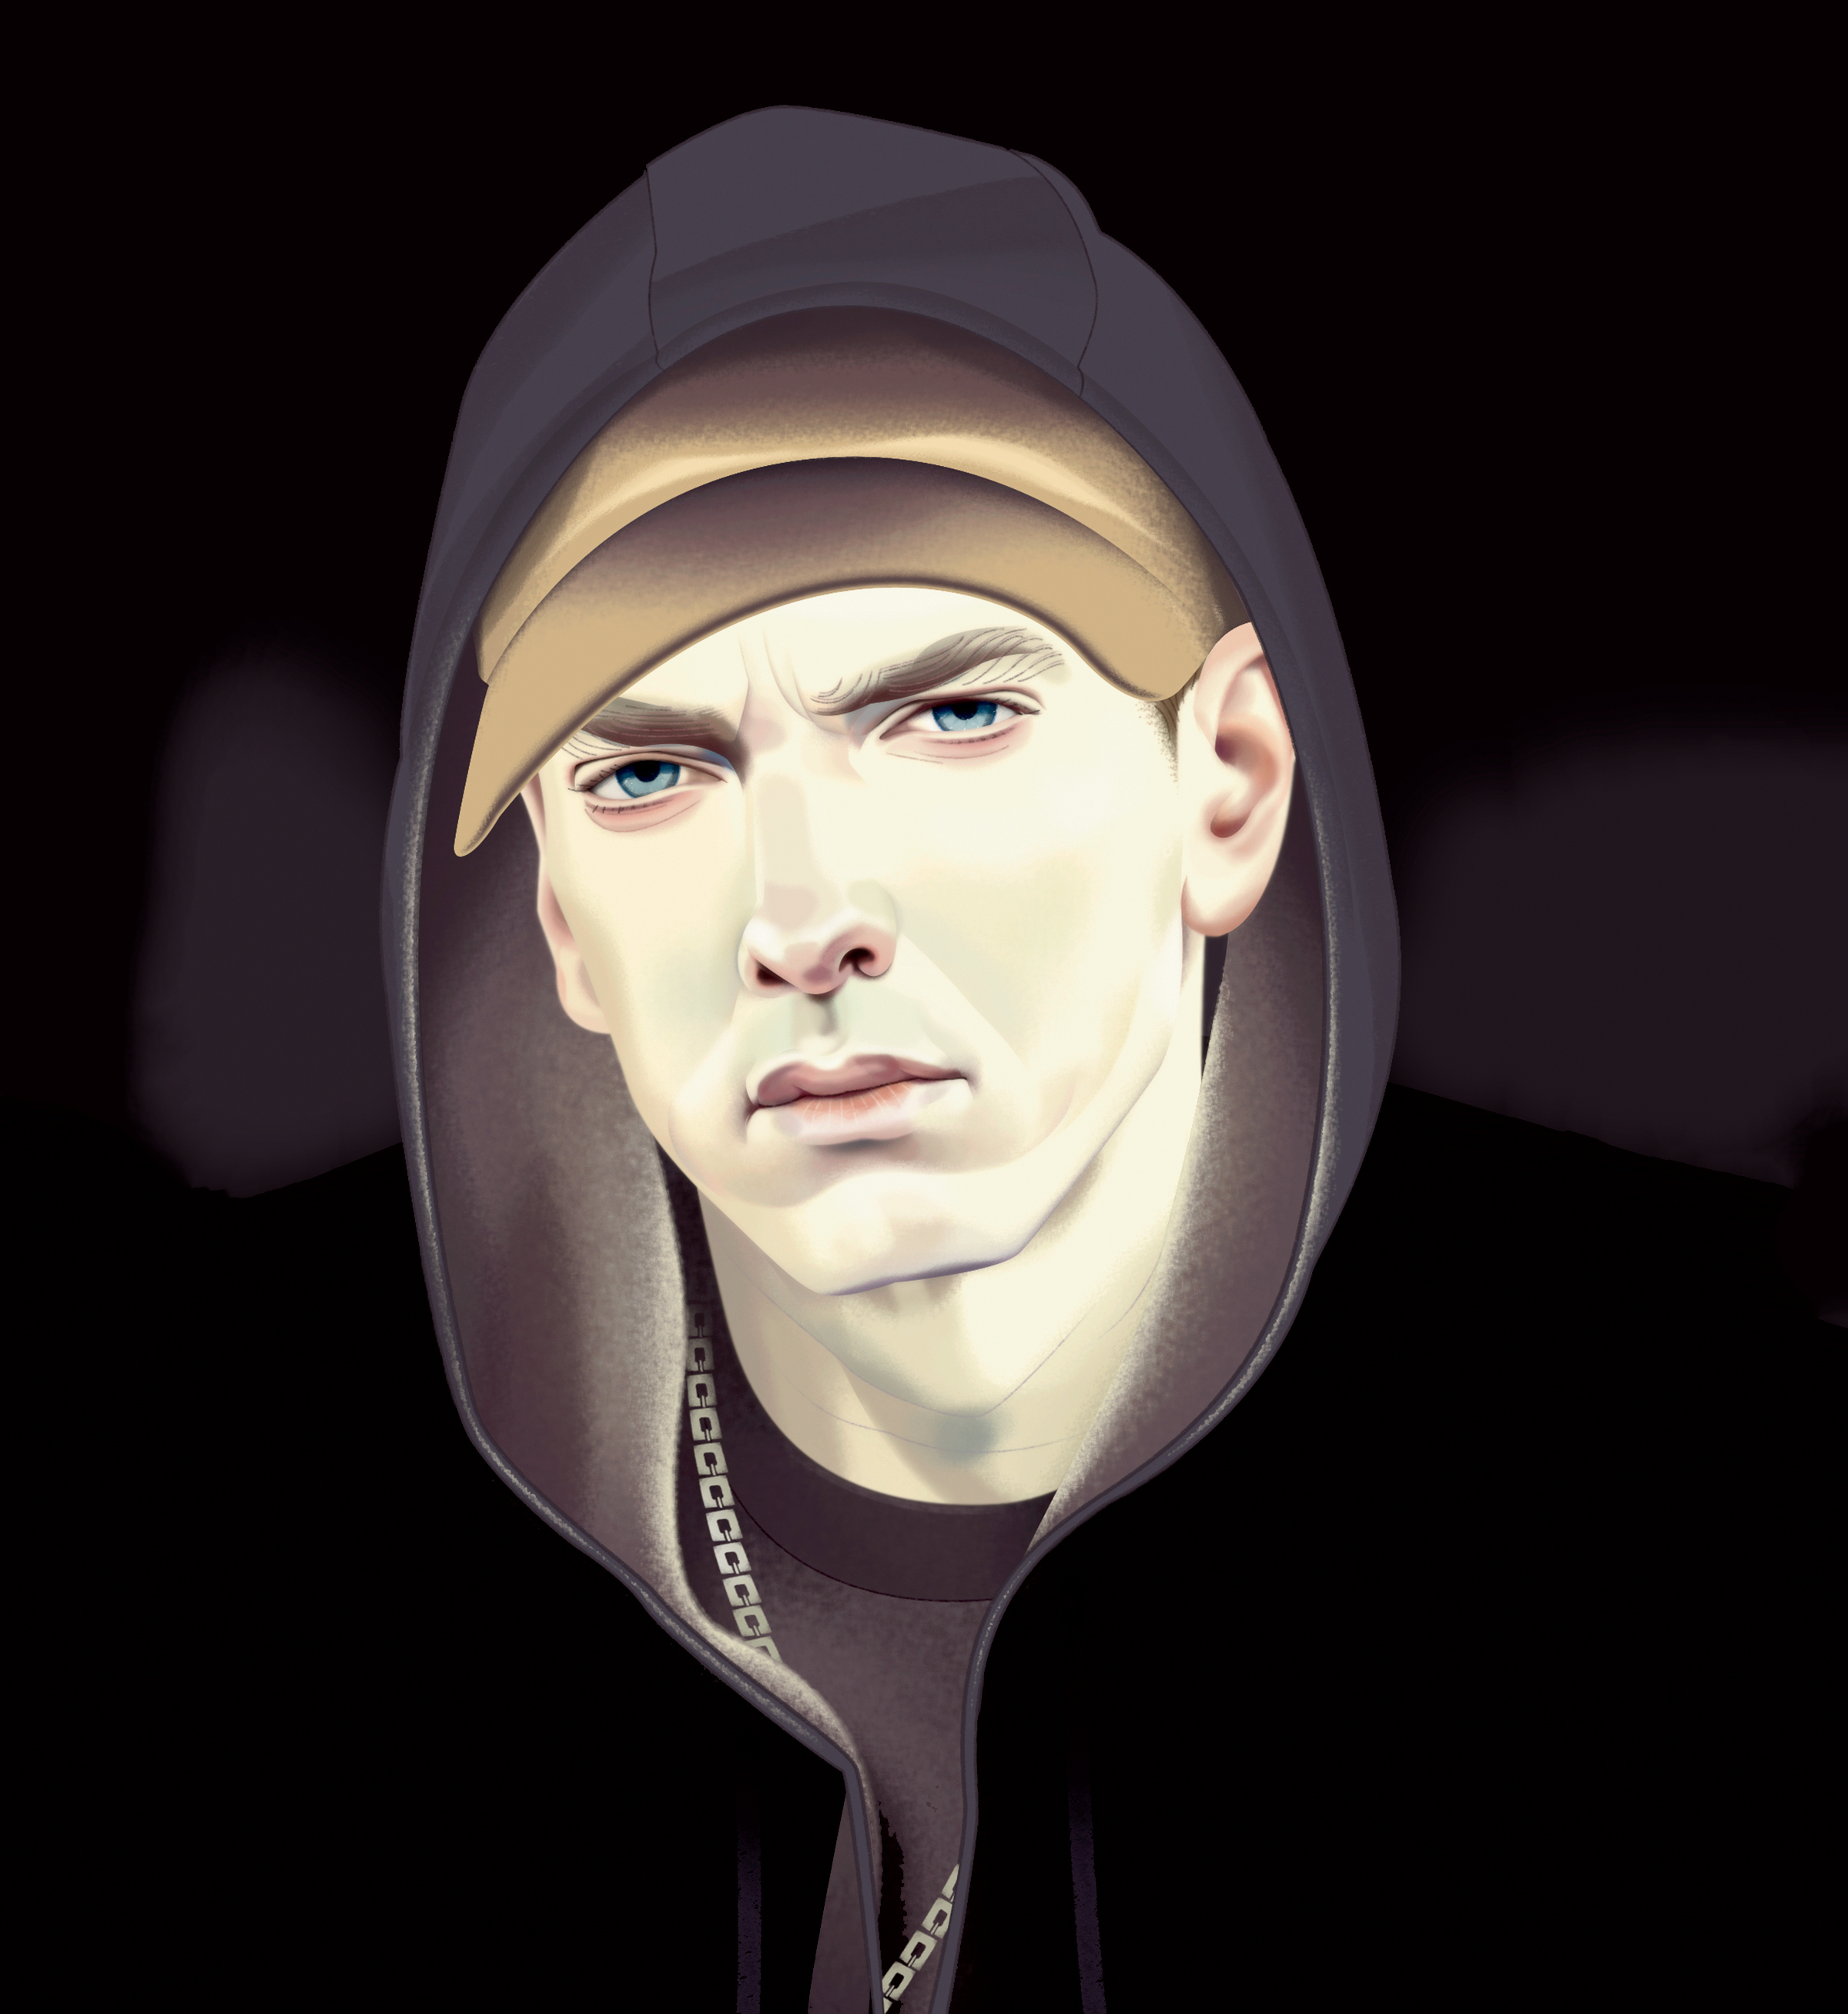 Review eminem is raw honest and compelling as ever on revival eminem illustration revival record review stopboris Image collections